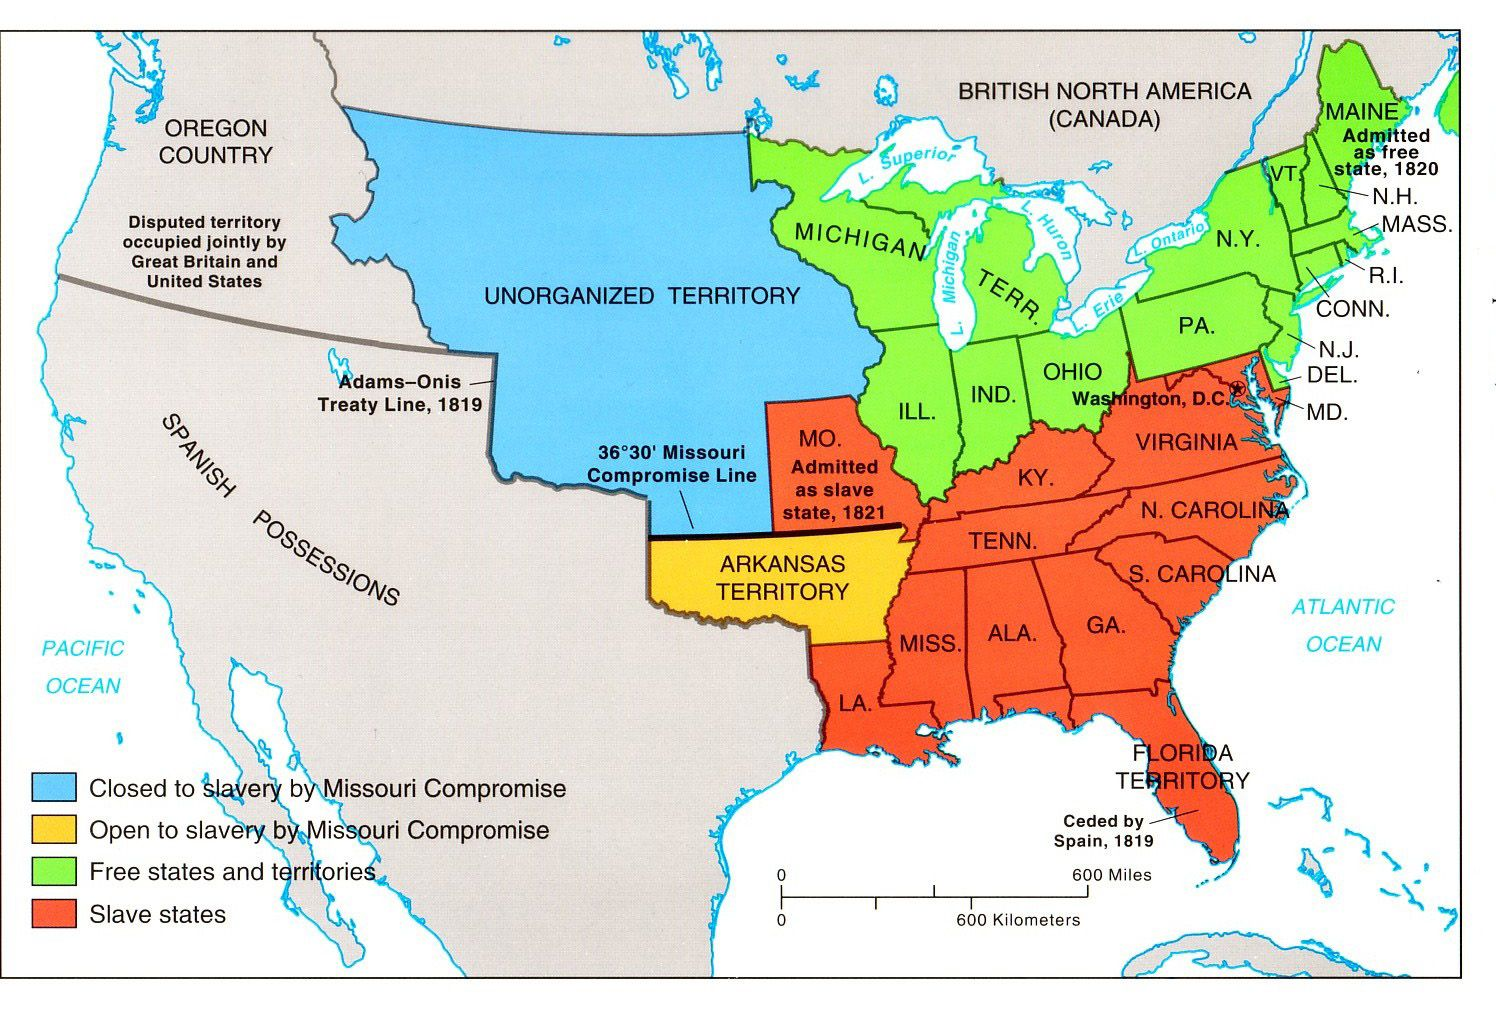 Worksheets Louisiana Purchase Map Worksheet the missouri compromise of 1820 as a result teaching social studies